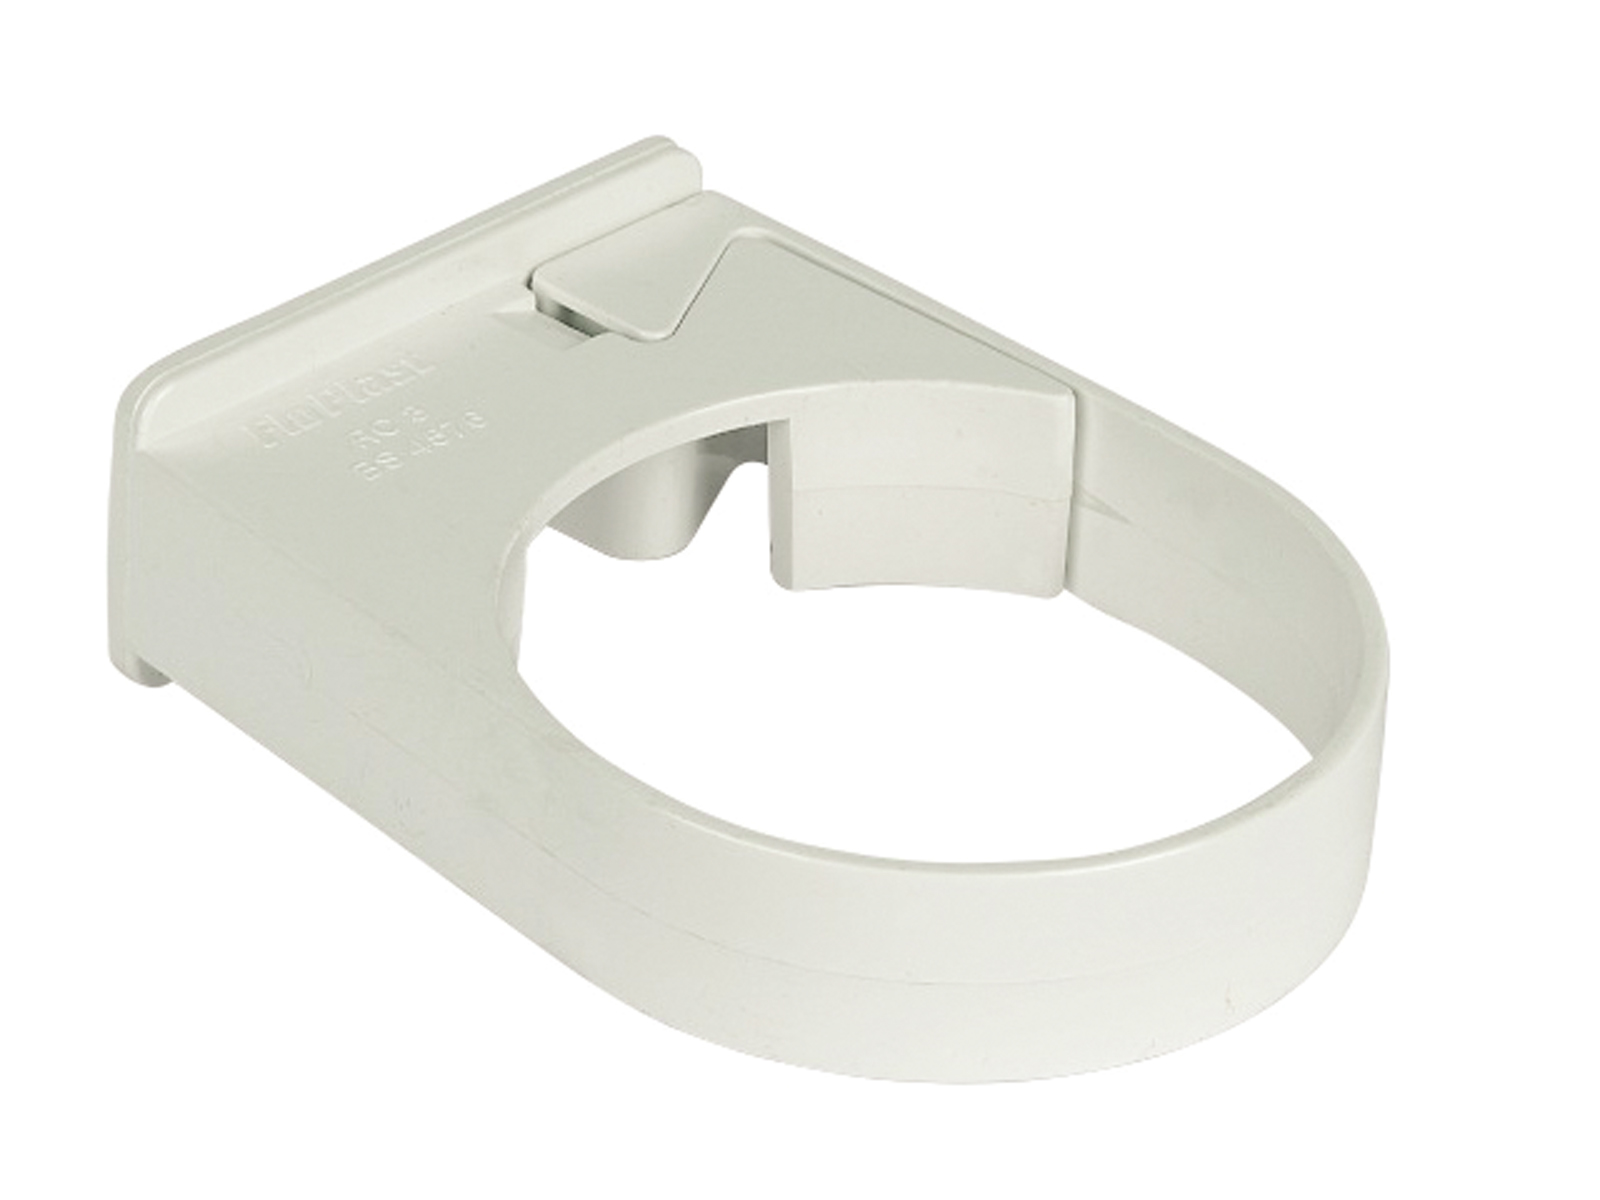 Floplast RC3WH 68mm Round Downpipe - Single Fix Pipe Clip - White